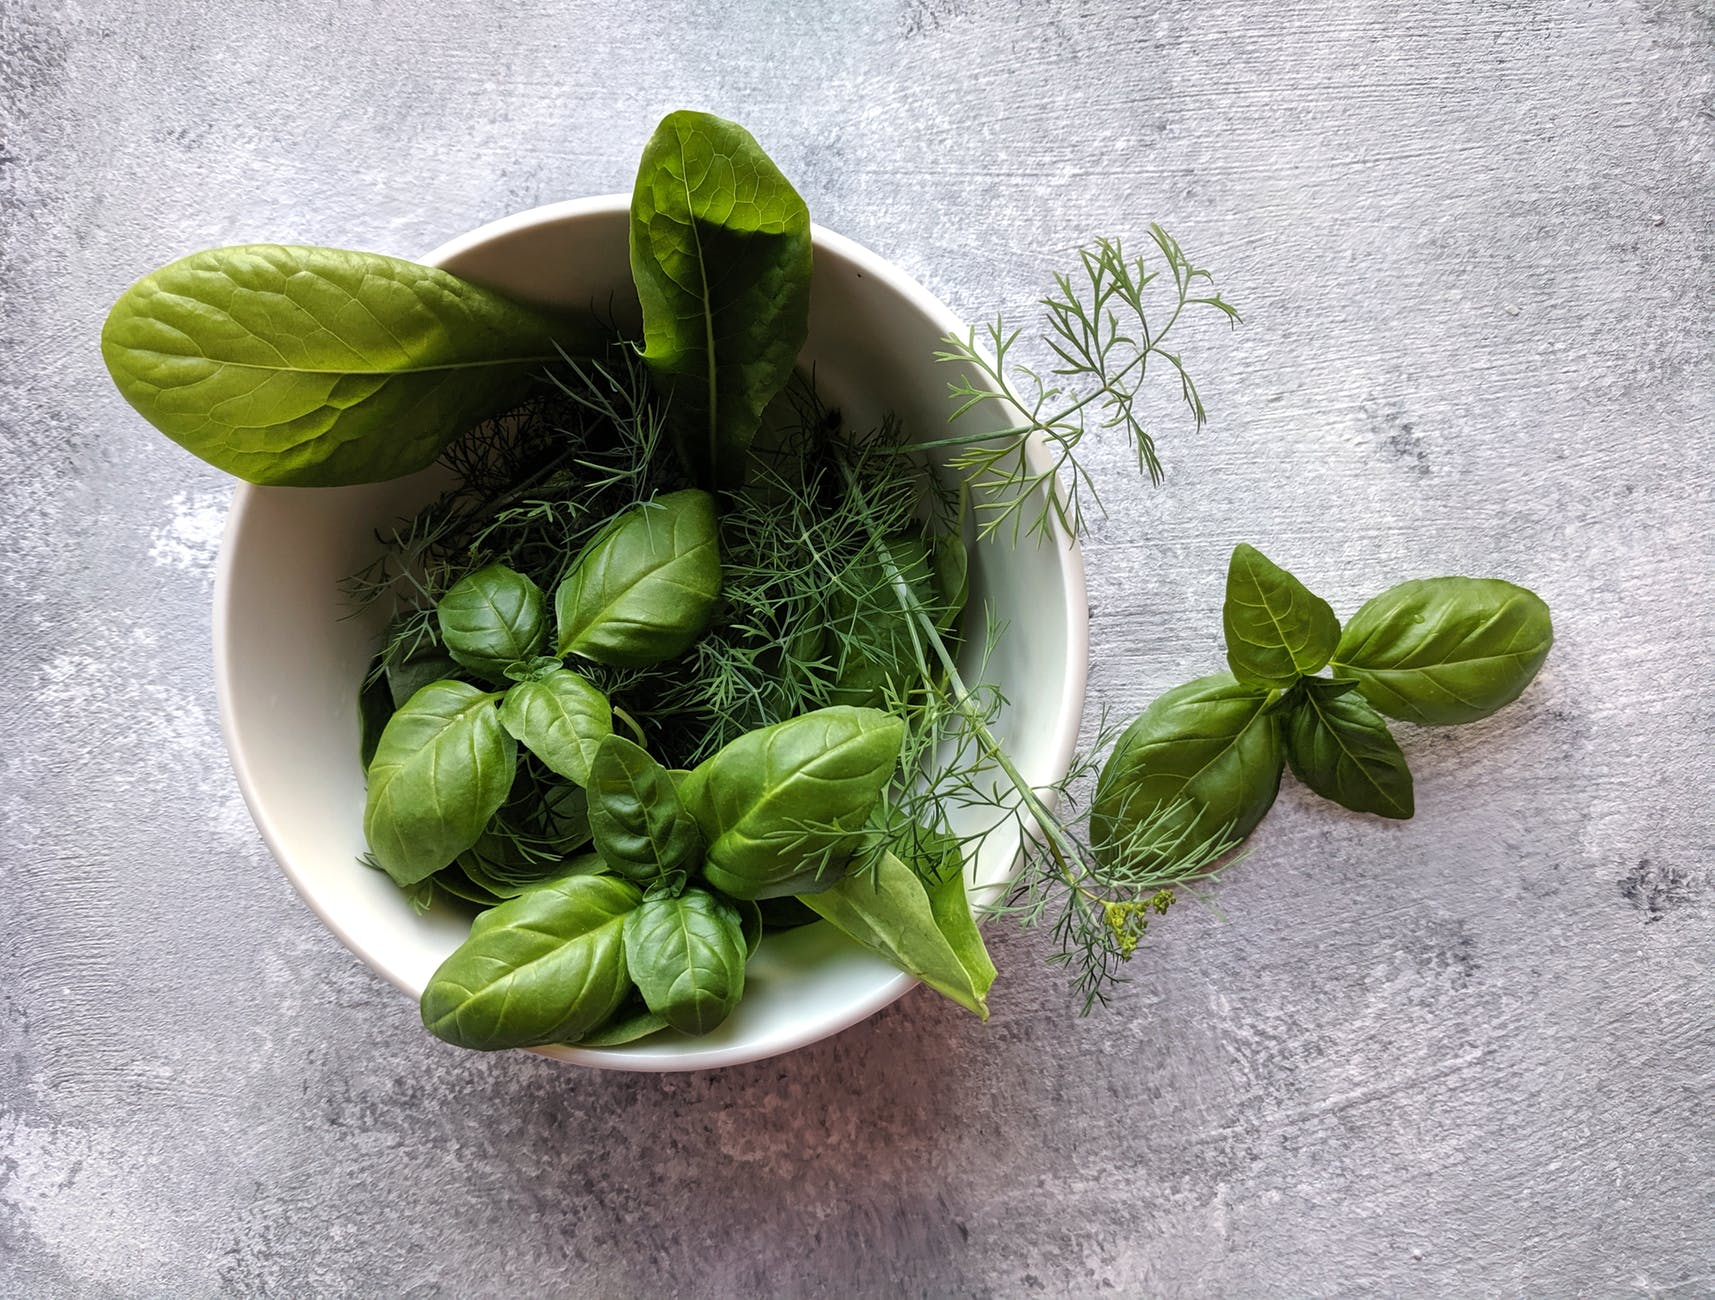 Tulsi Health Benefits: THESE are the health benefits of holy basil